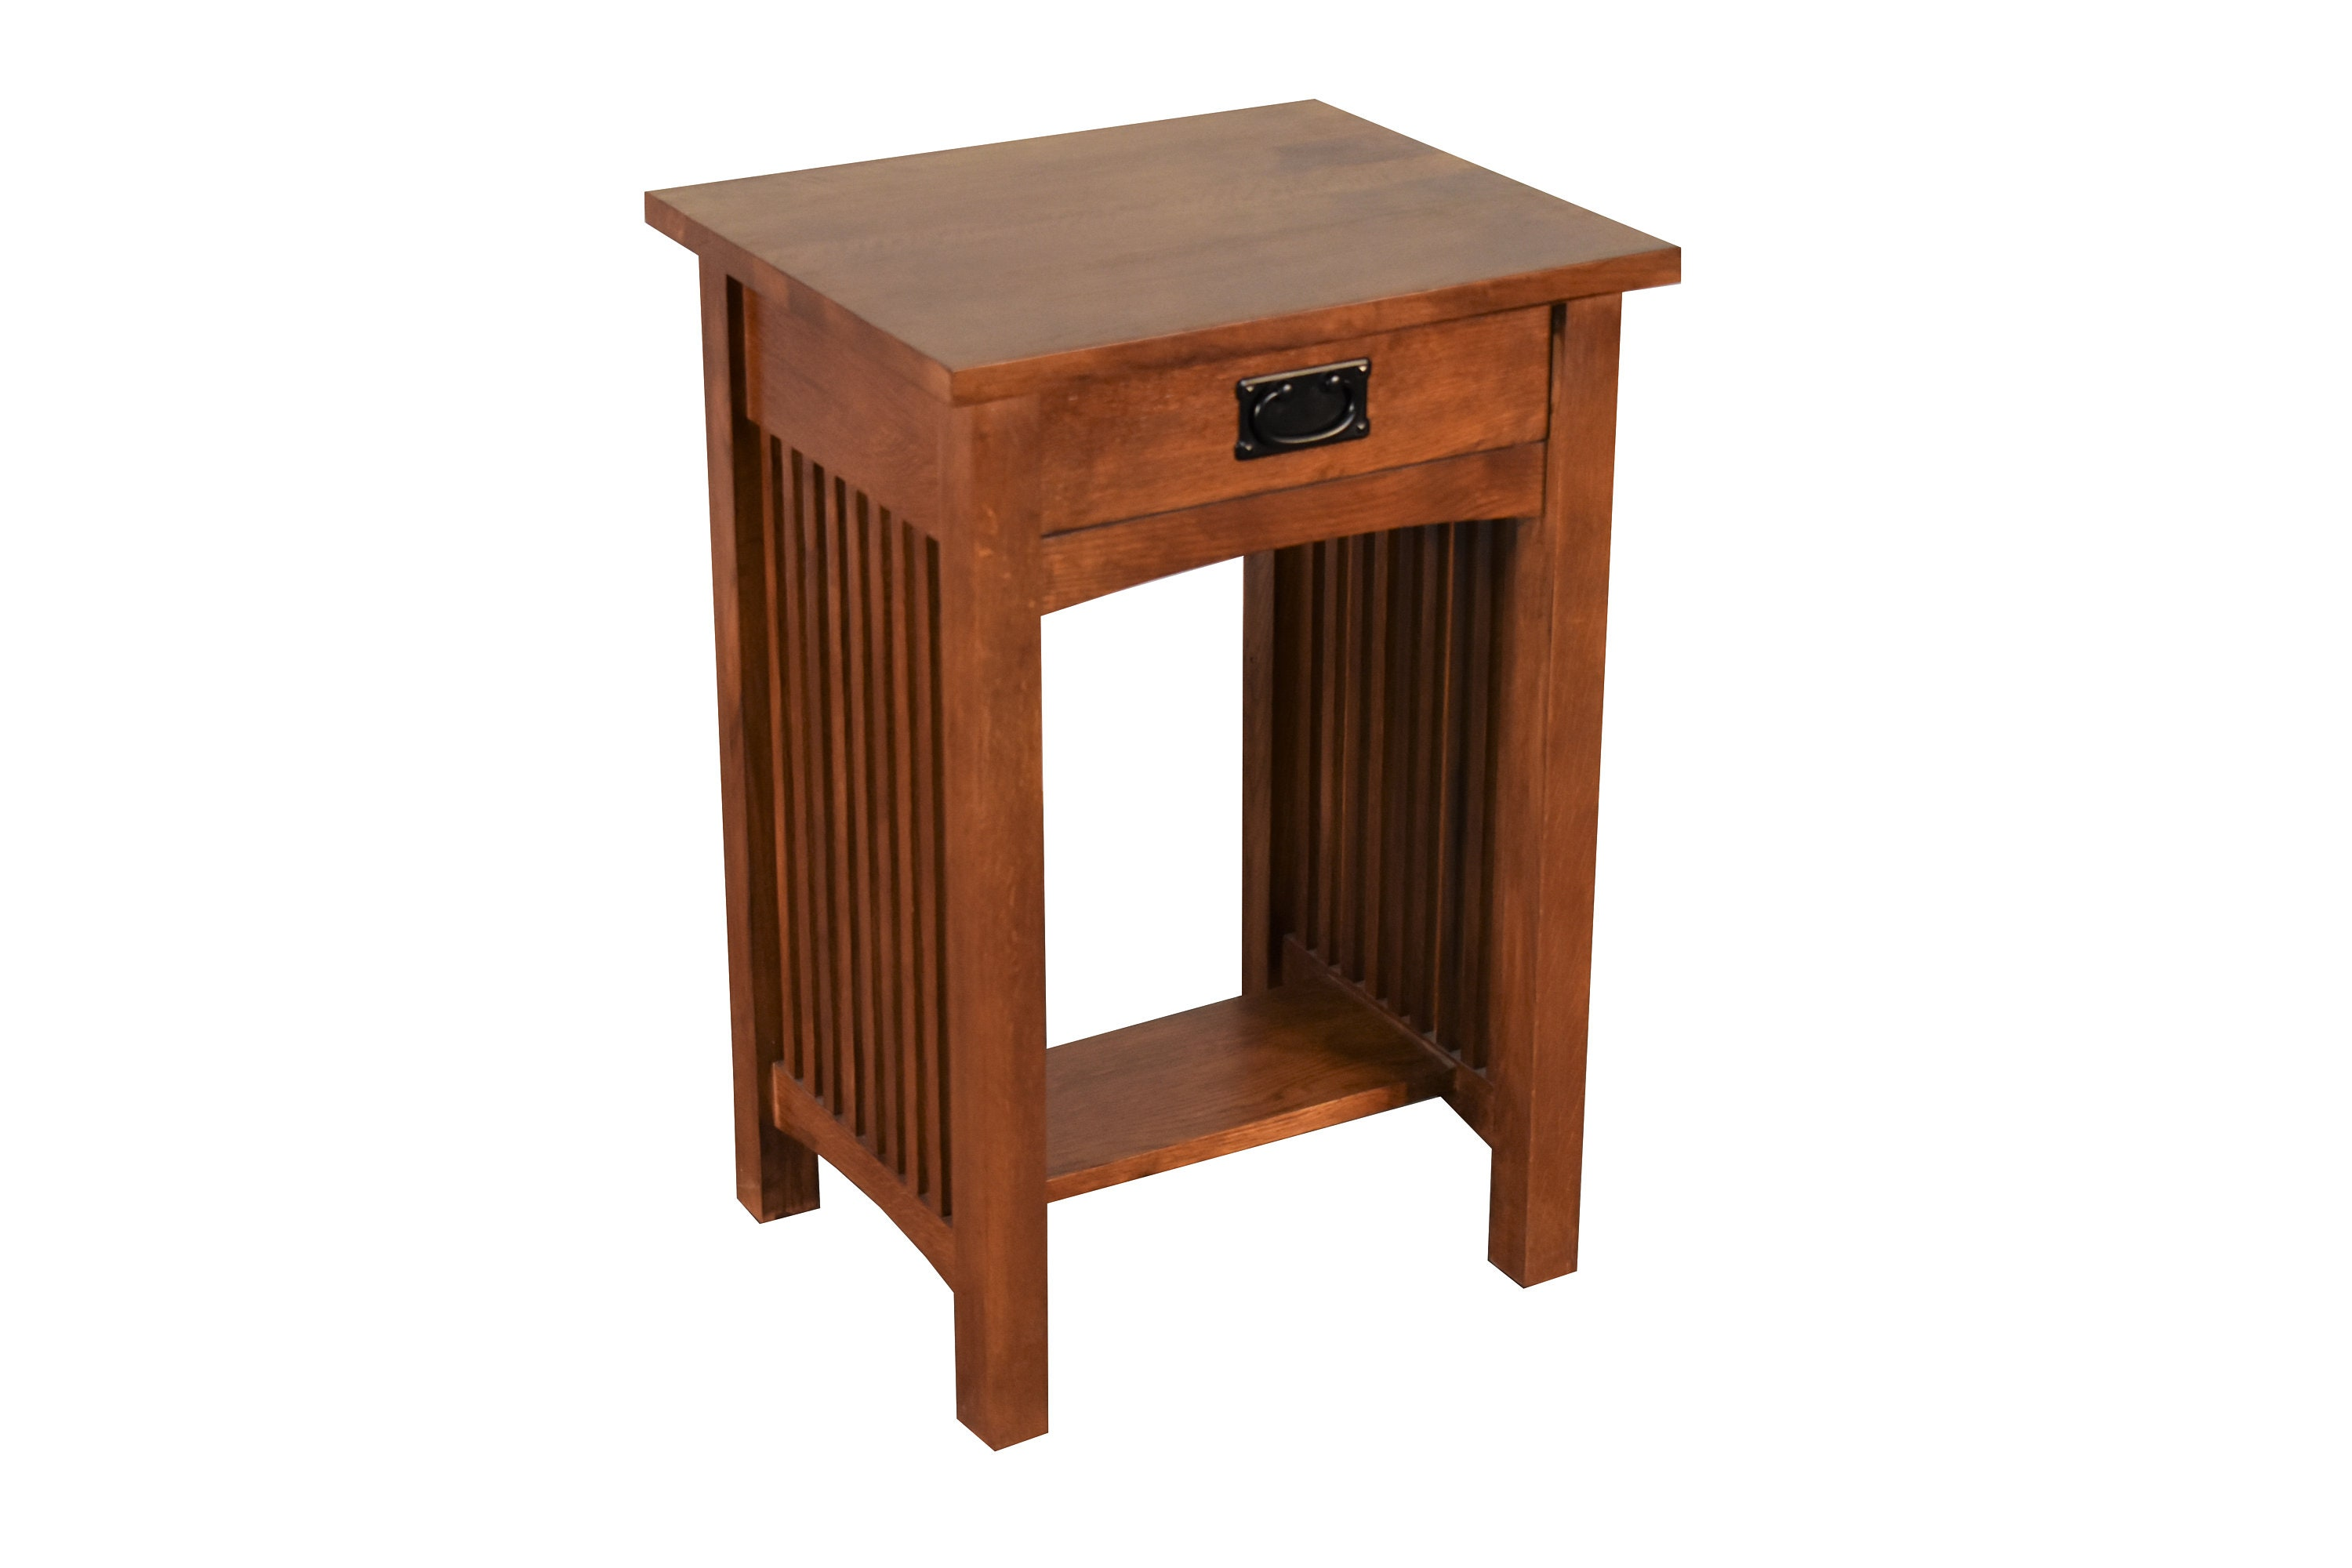 Mission Style Solid Oak 1 Drawer Nightstand Bedside Table With Spindles